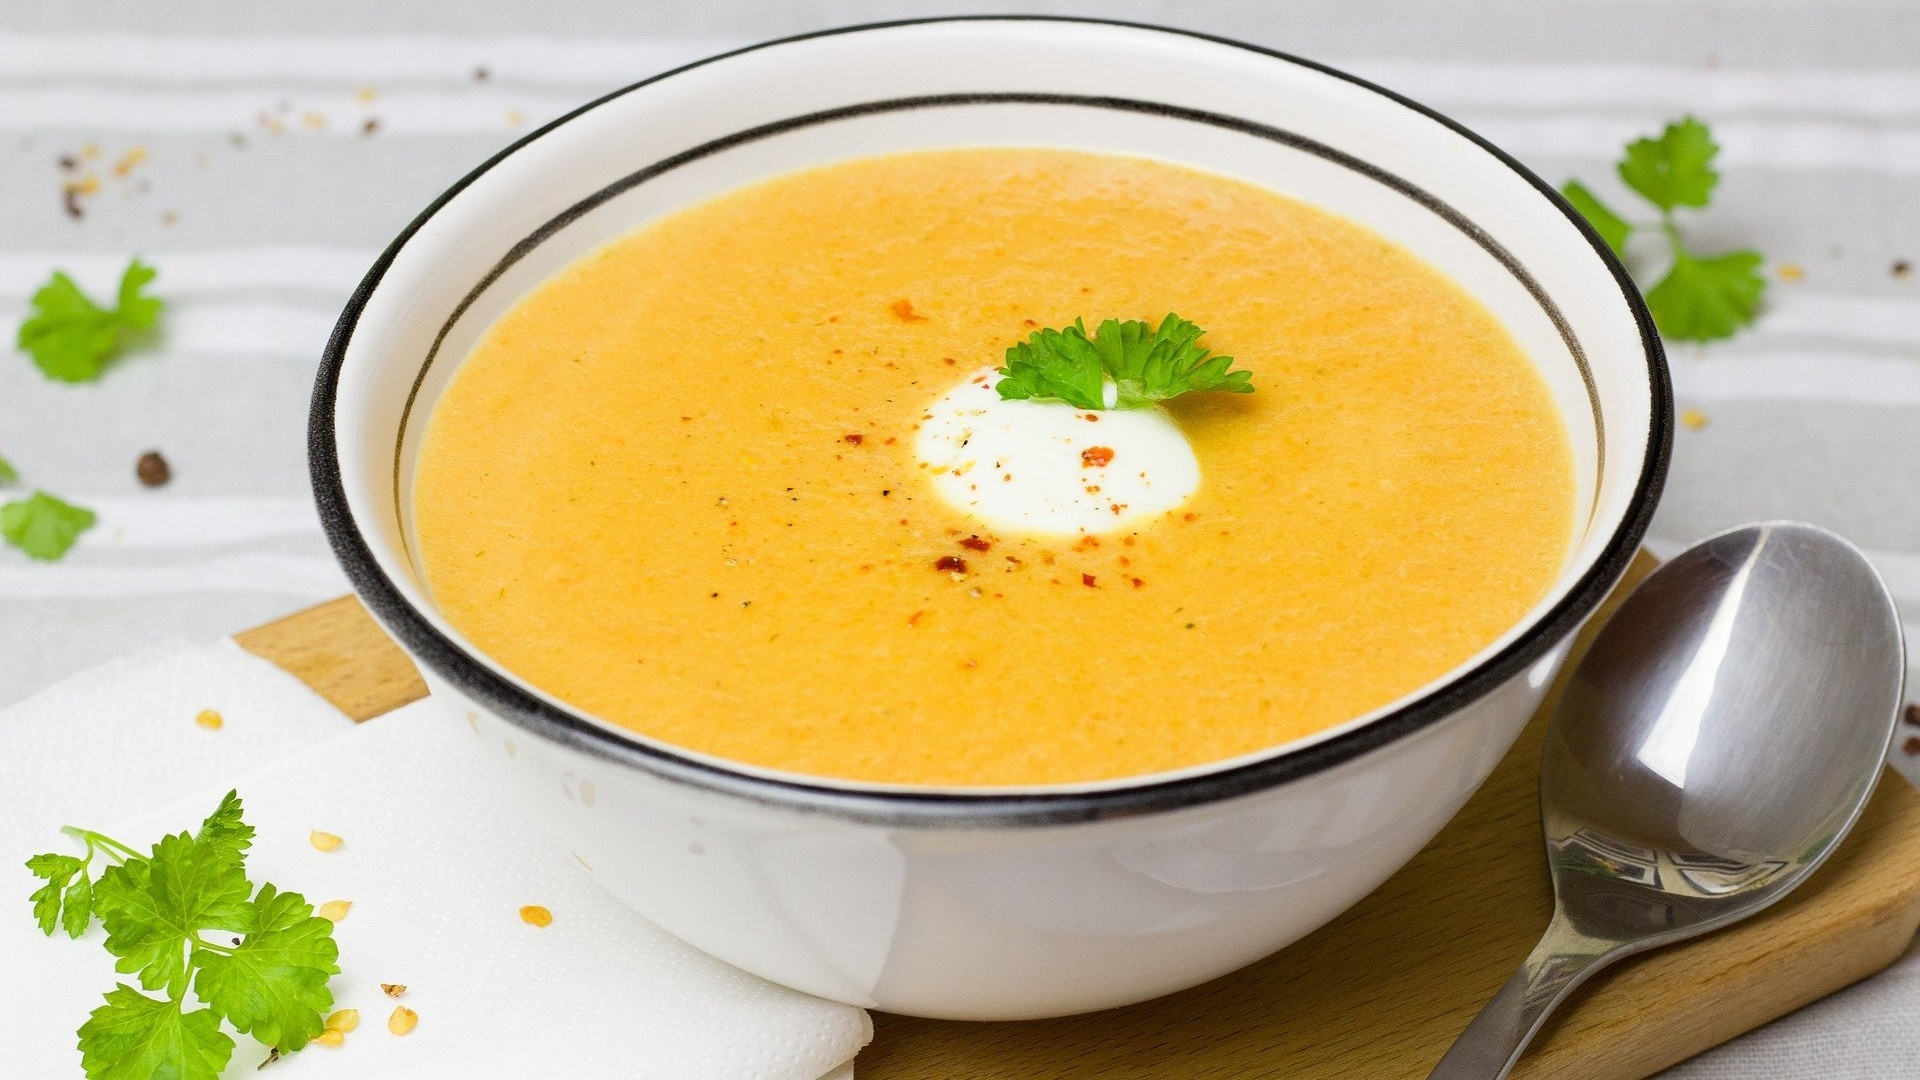 soup-2006317_1920 Cropped